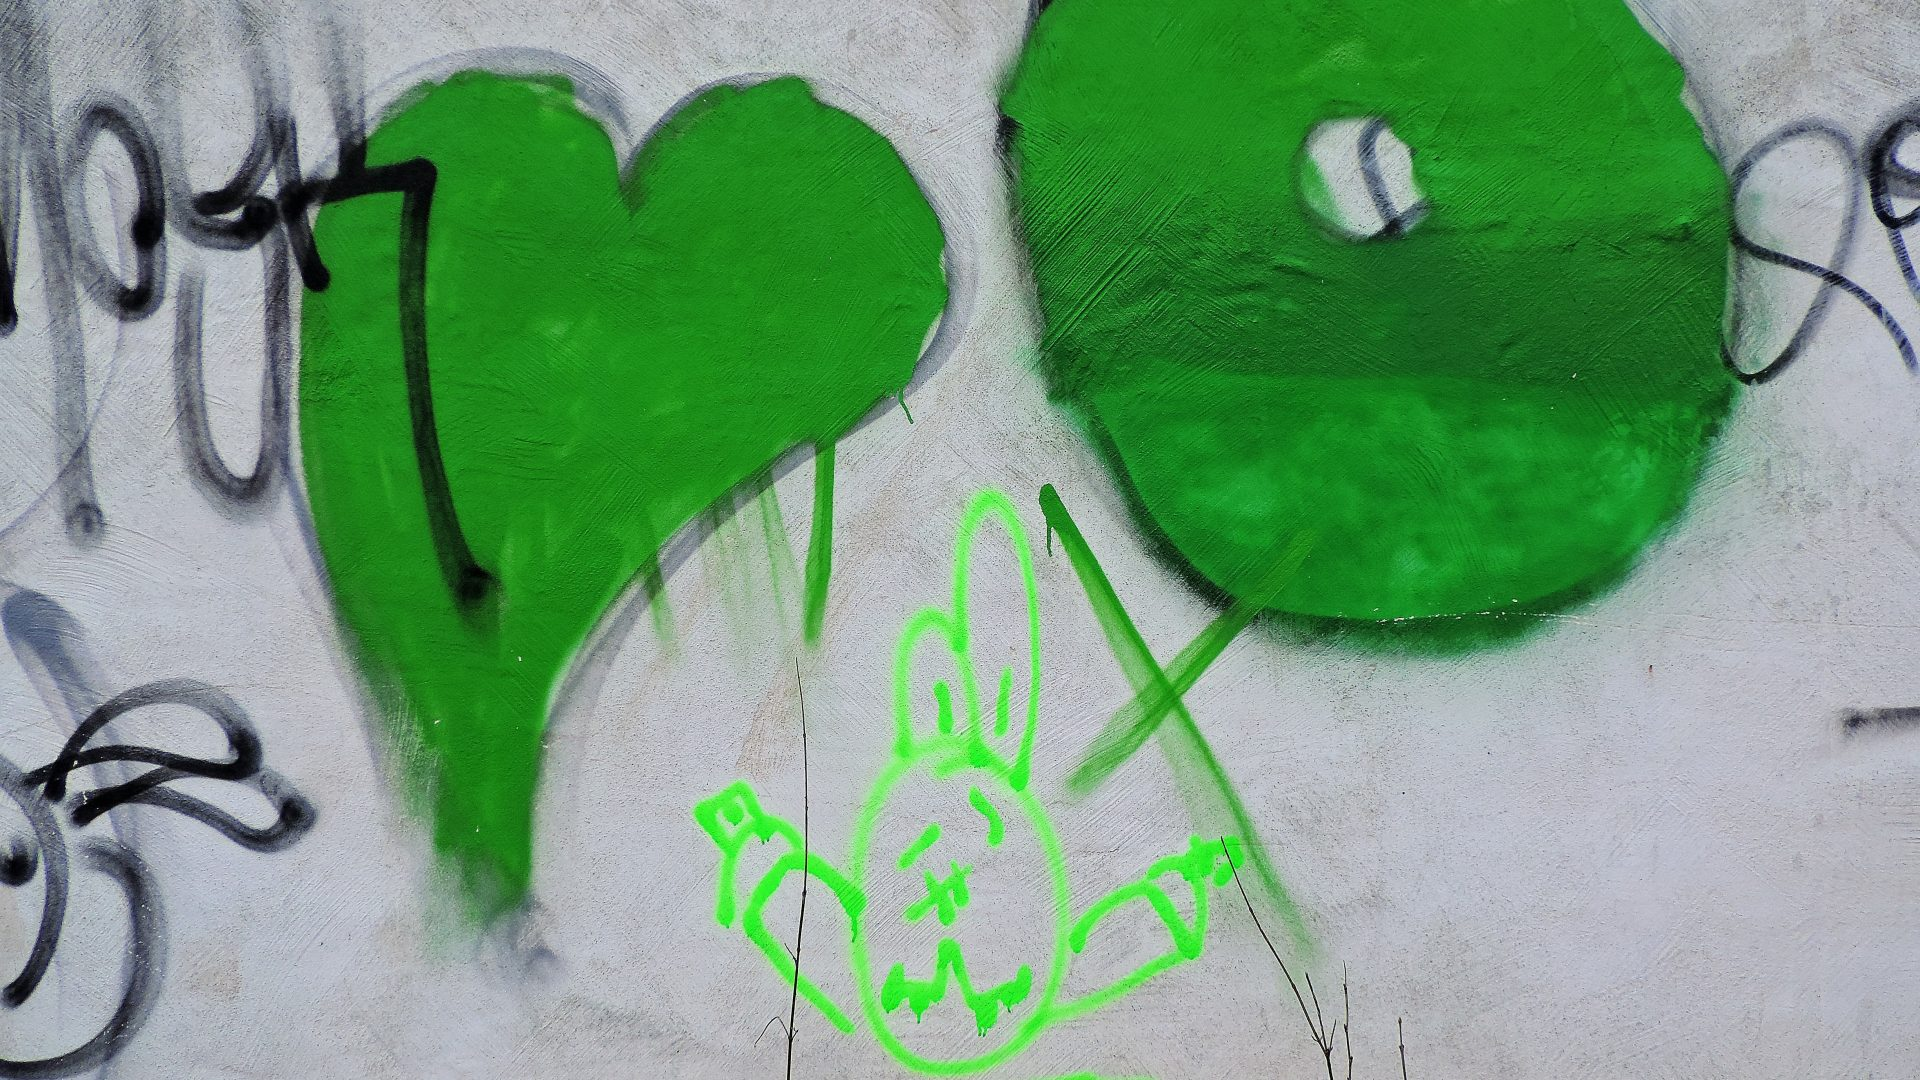 03950 | berliner mauern | berlin, graffiti, green heart